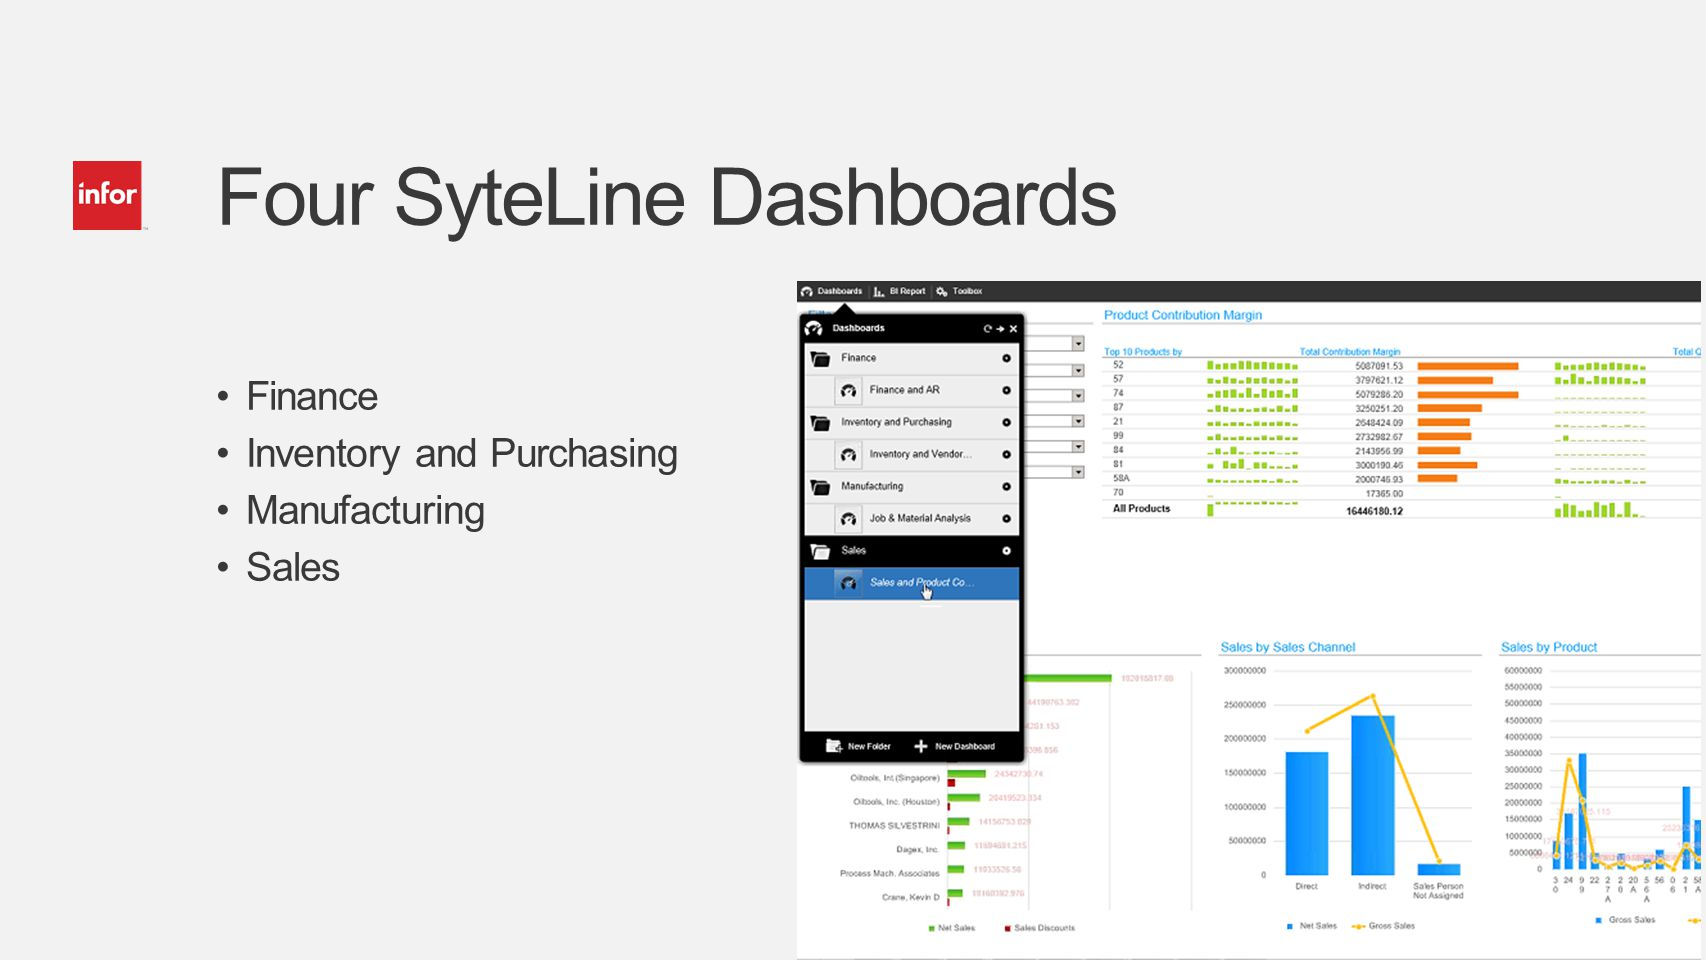 Four SyteLine Dashboards